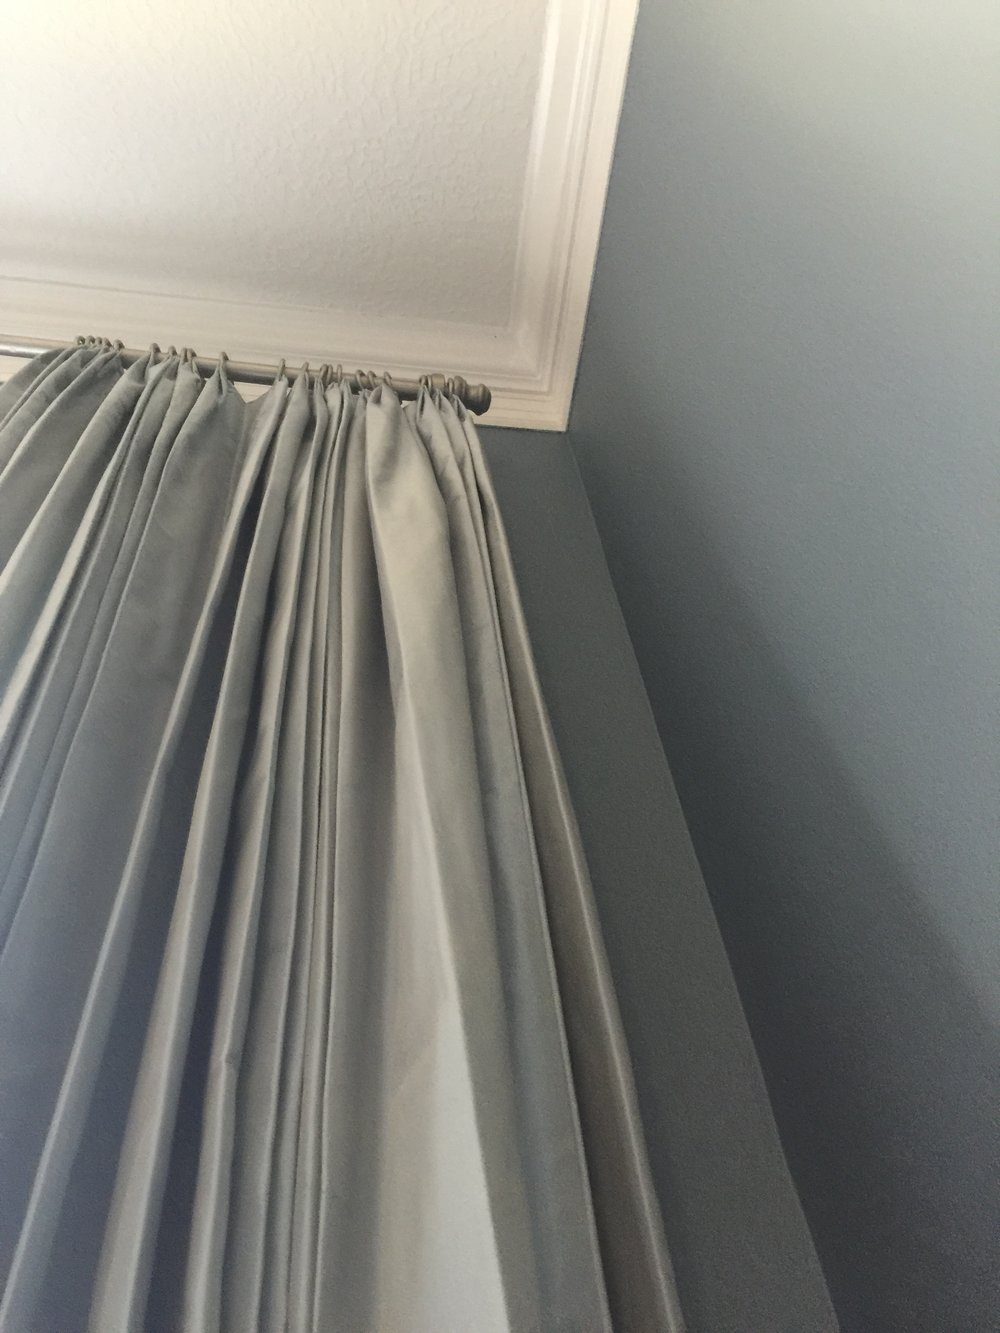 Silk drapery panels in blue gray dining rooom #drapery #silkdrapery #windowtreatments